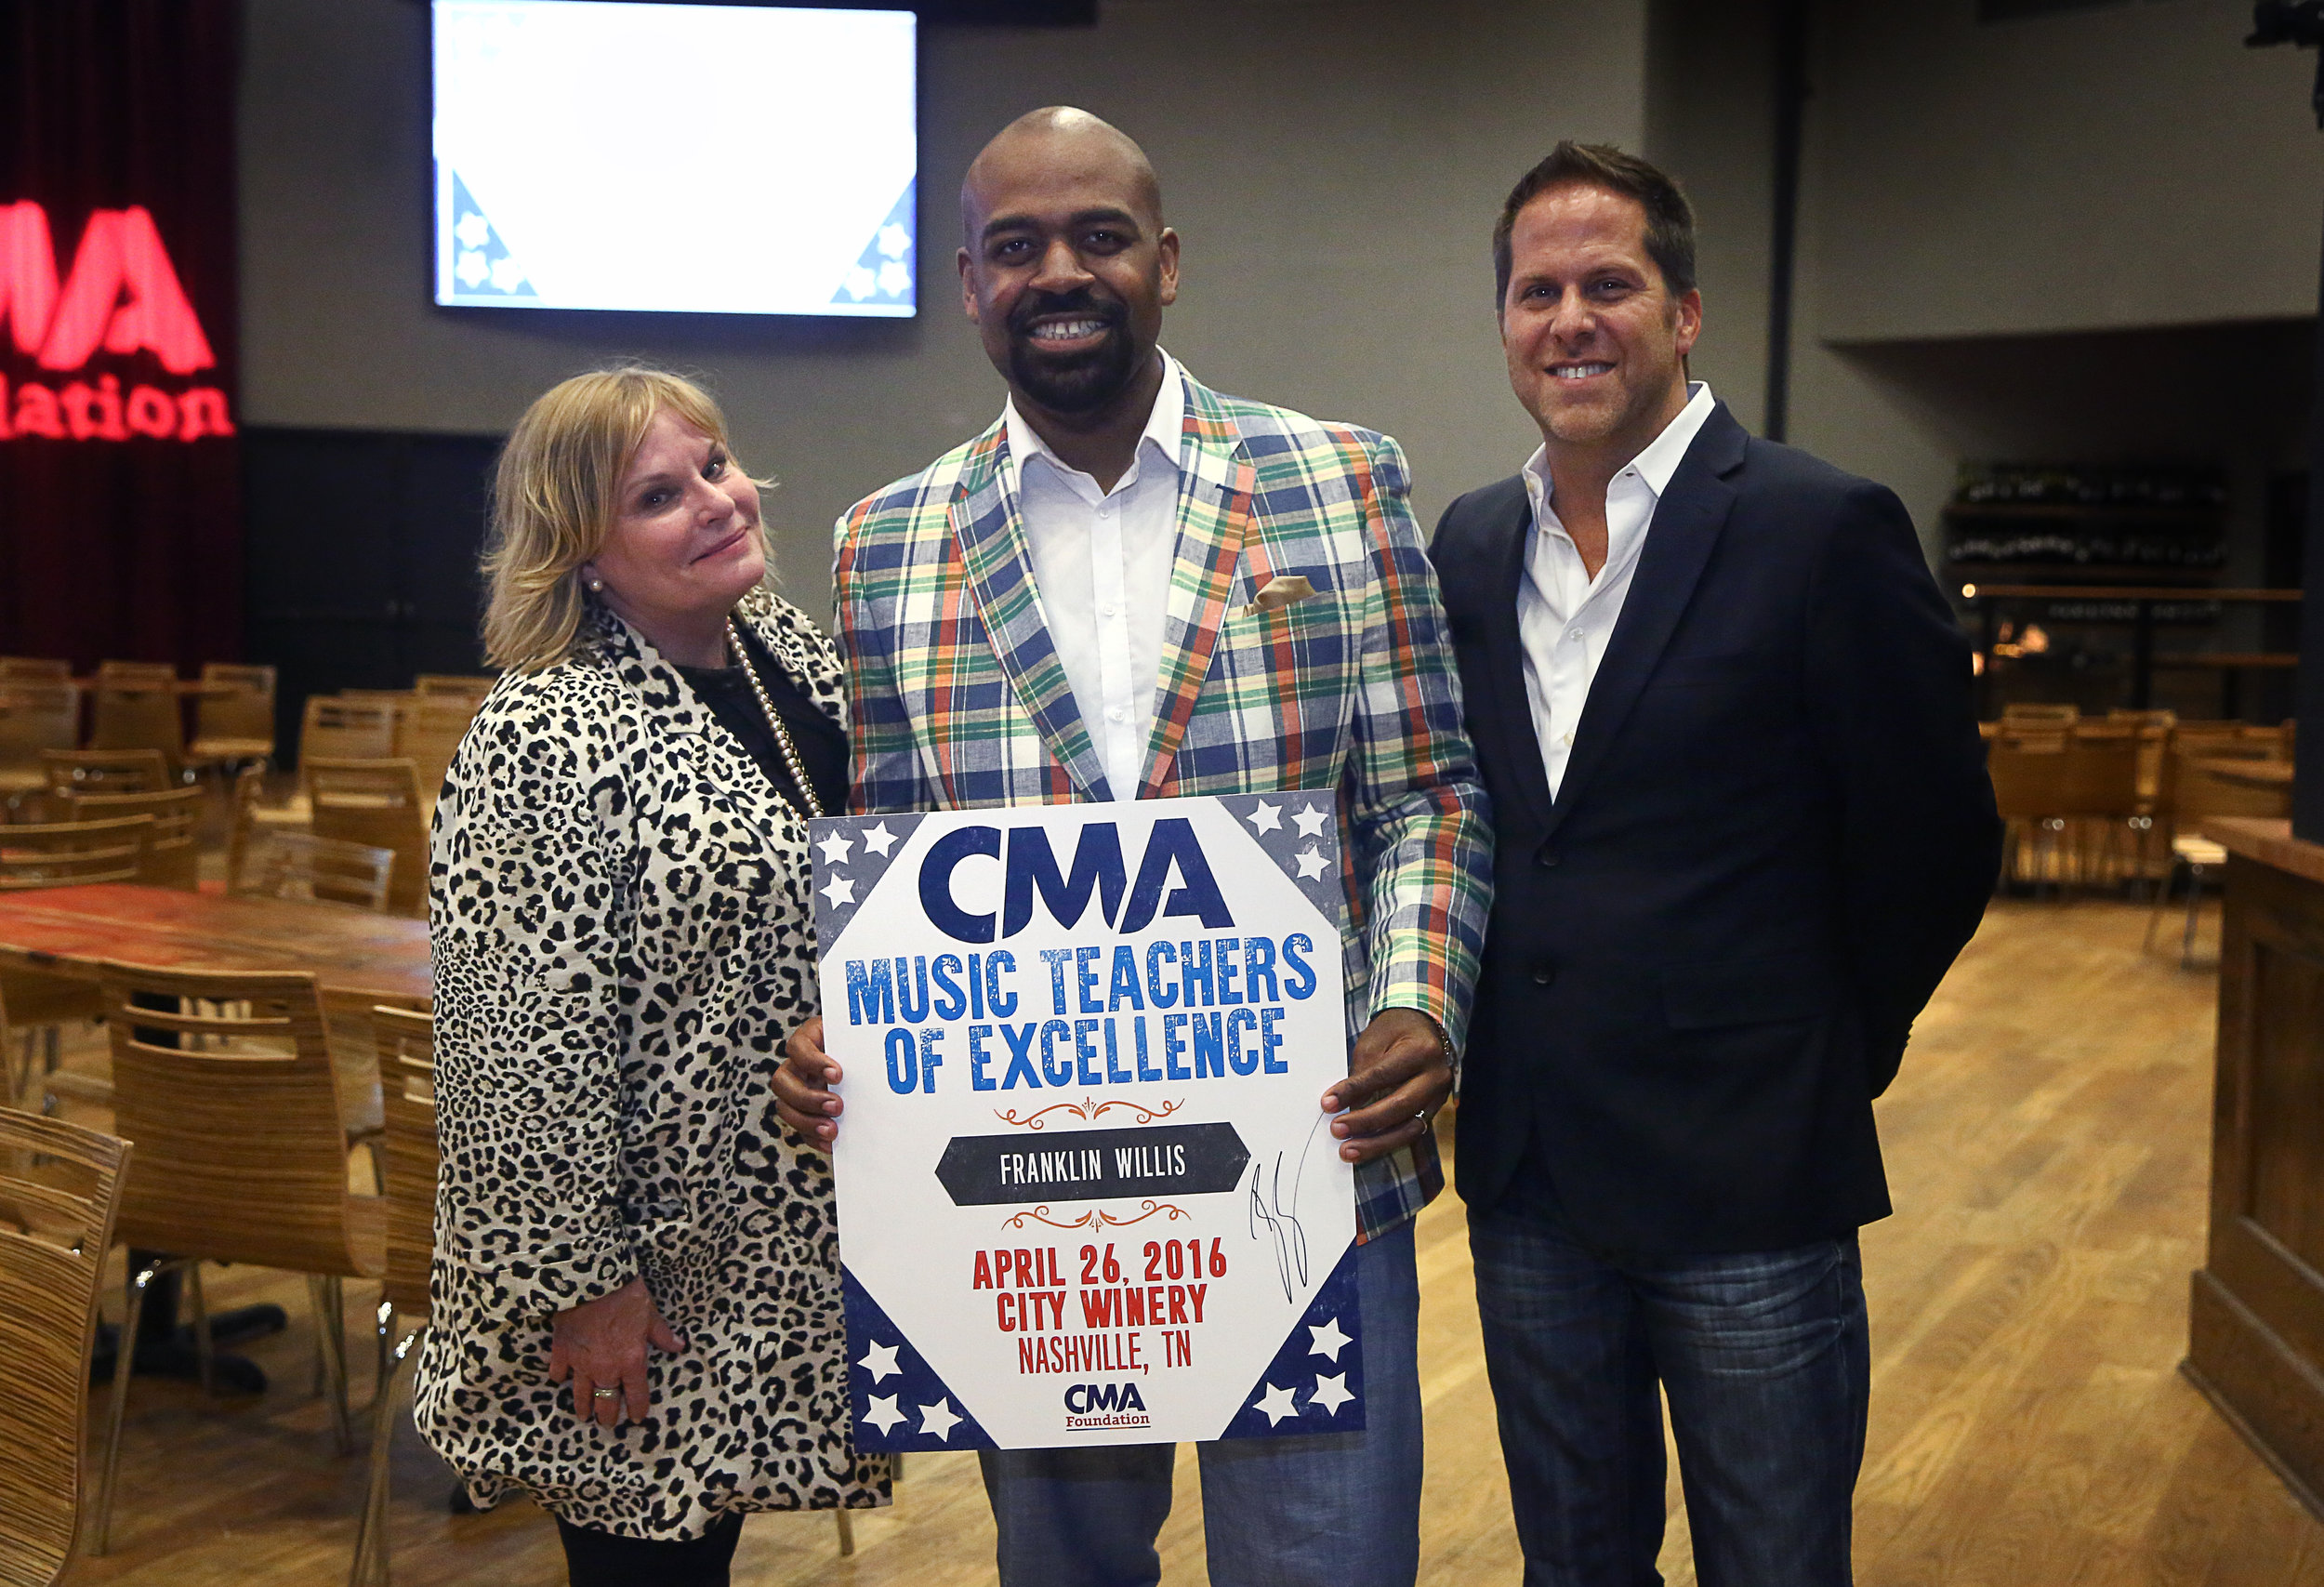 CMA Music Teacher of Excellence Franklin Willis, Choral Director at Madison Middle Prep (center), with Dr. Nola Jones, Coordinator of Visual and Performing Arts, Metro Nashville Public Schools, and Jon Loba, Executive Vice President, BBR Music Group and CMA Board member, at the CMA Music Teacher of Excellence honors at City Winery Tuesday in Nashville. Photo Credit: Kayla Schoen / CMA